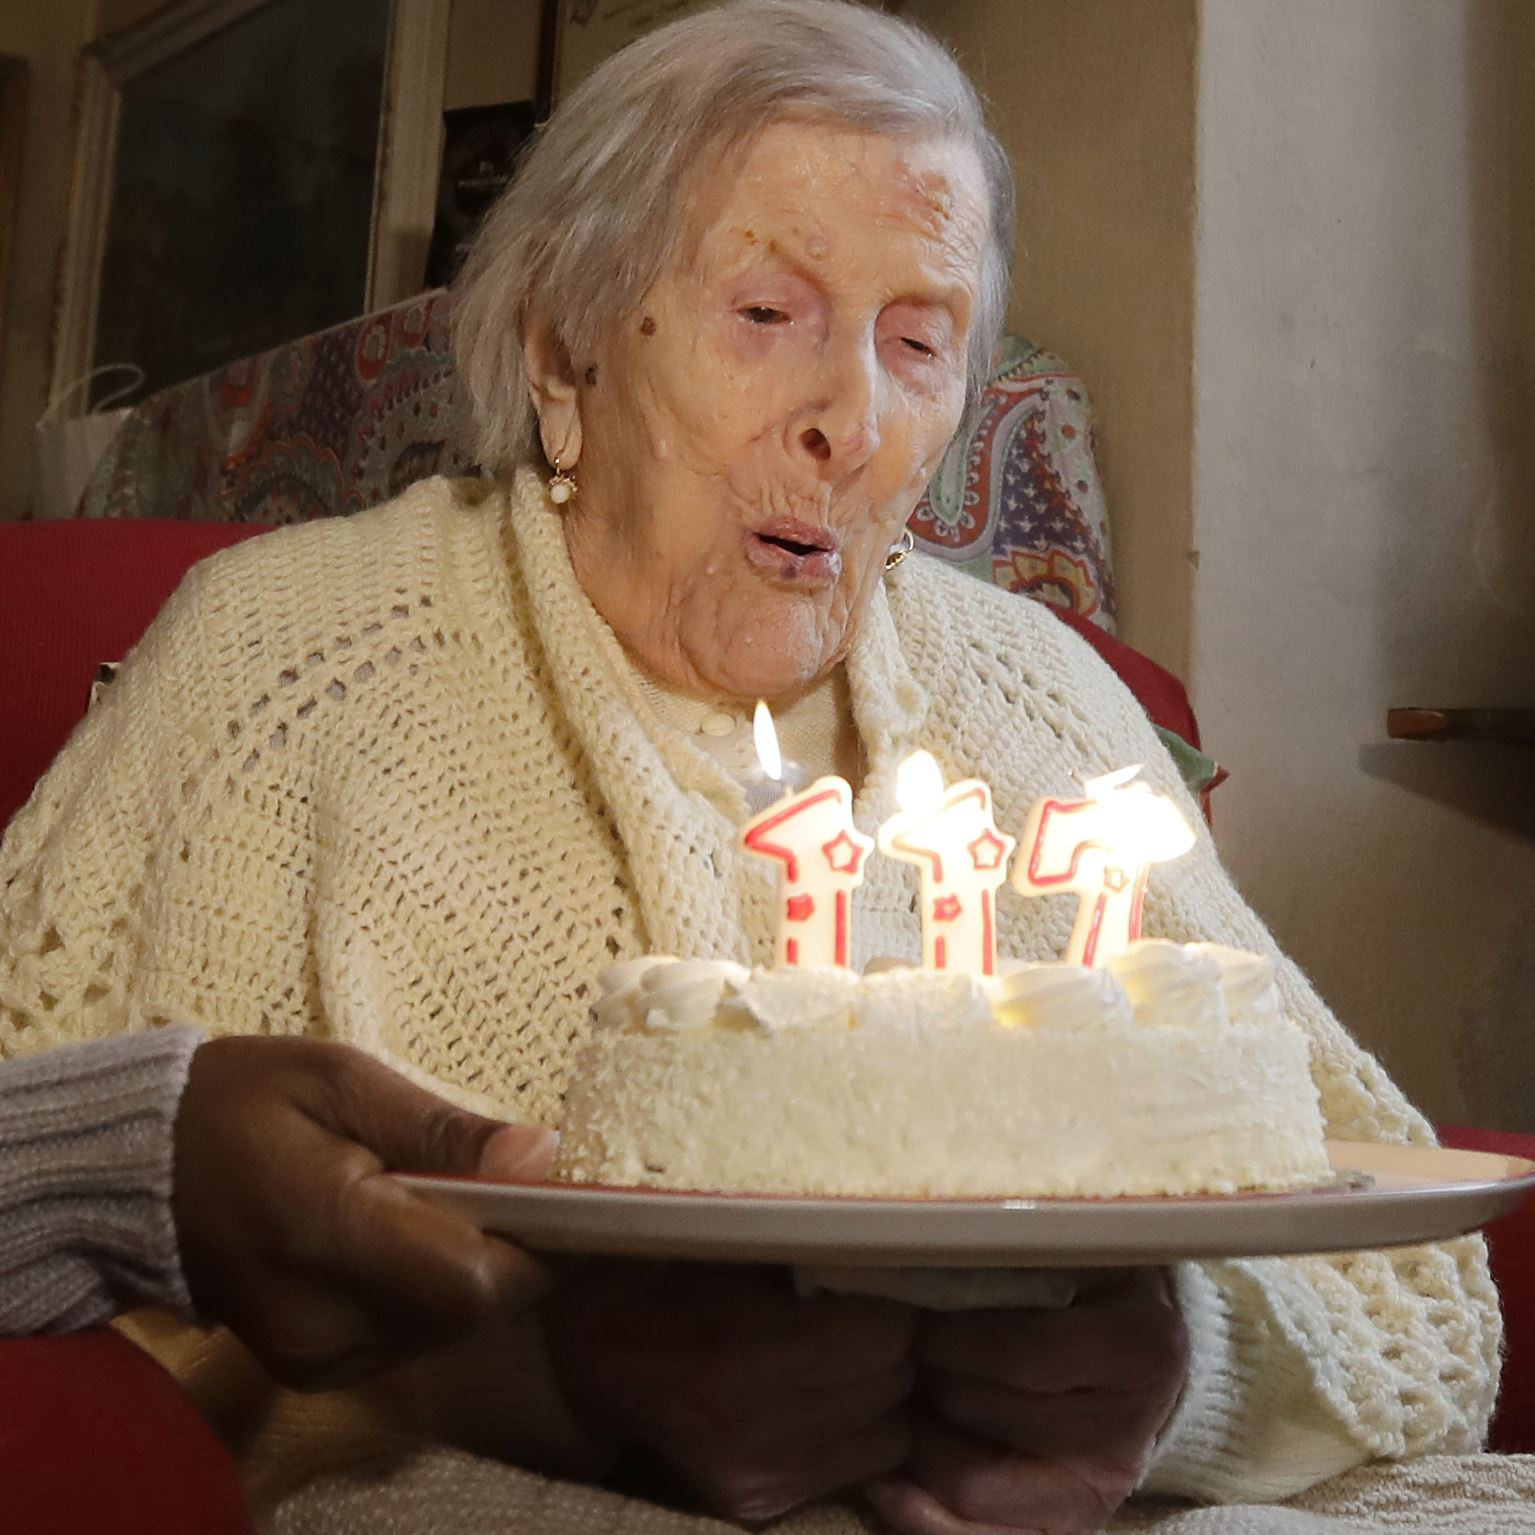 Italy World's Oldest Person-2 Emma Morano blows candles on Nov. 29, 2016, the day of her 117th birthday in Verbania, Italy.